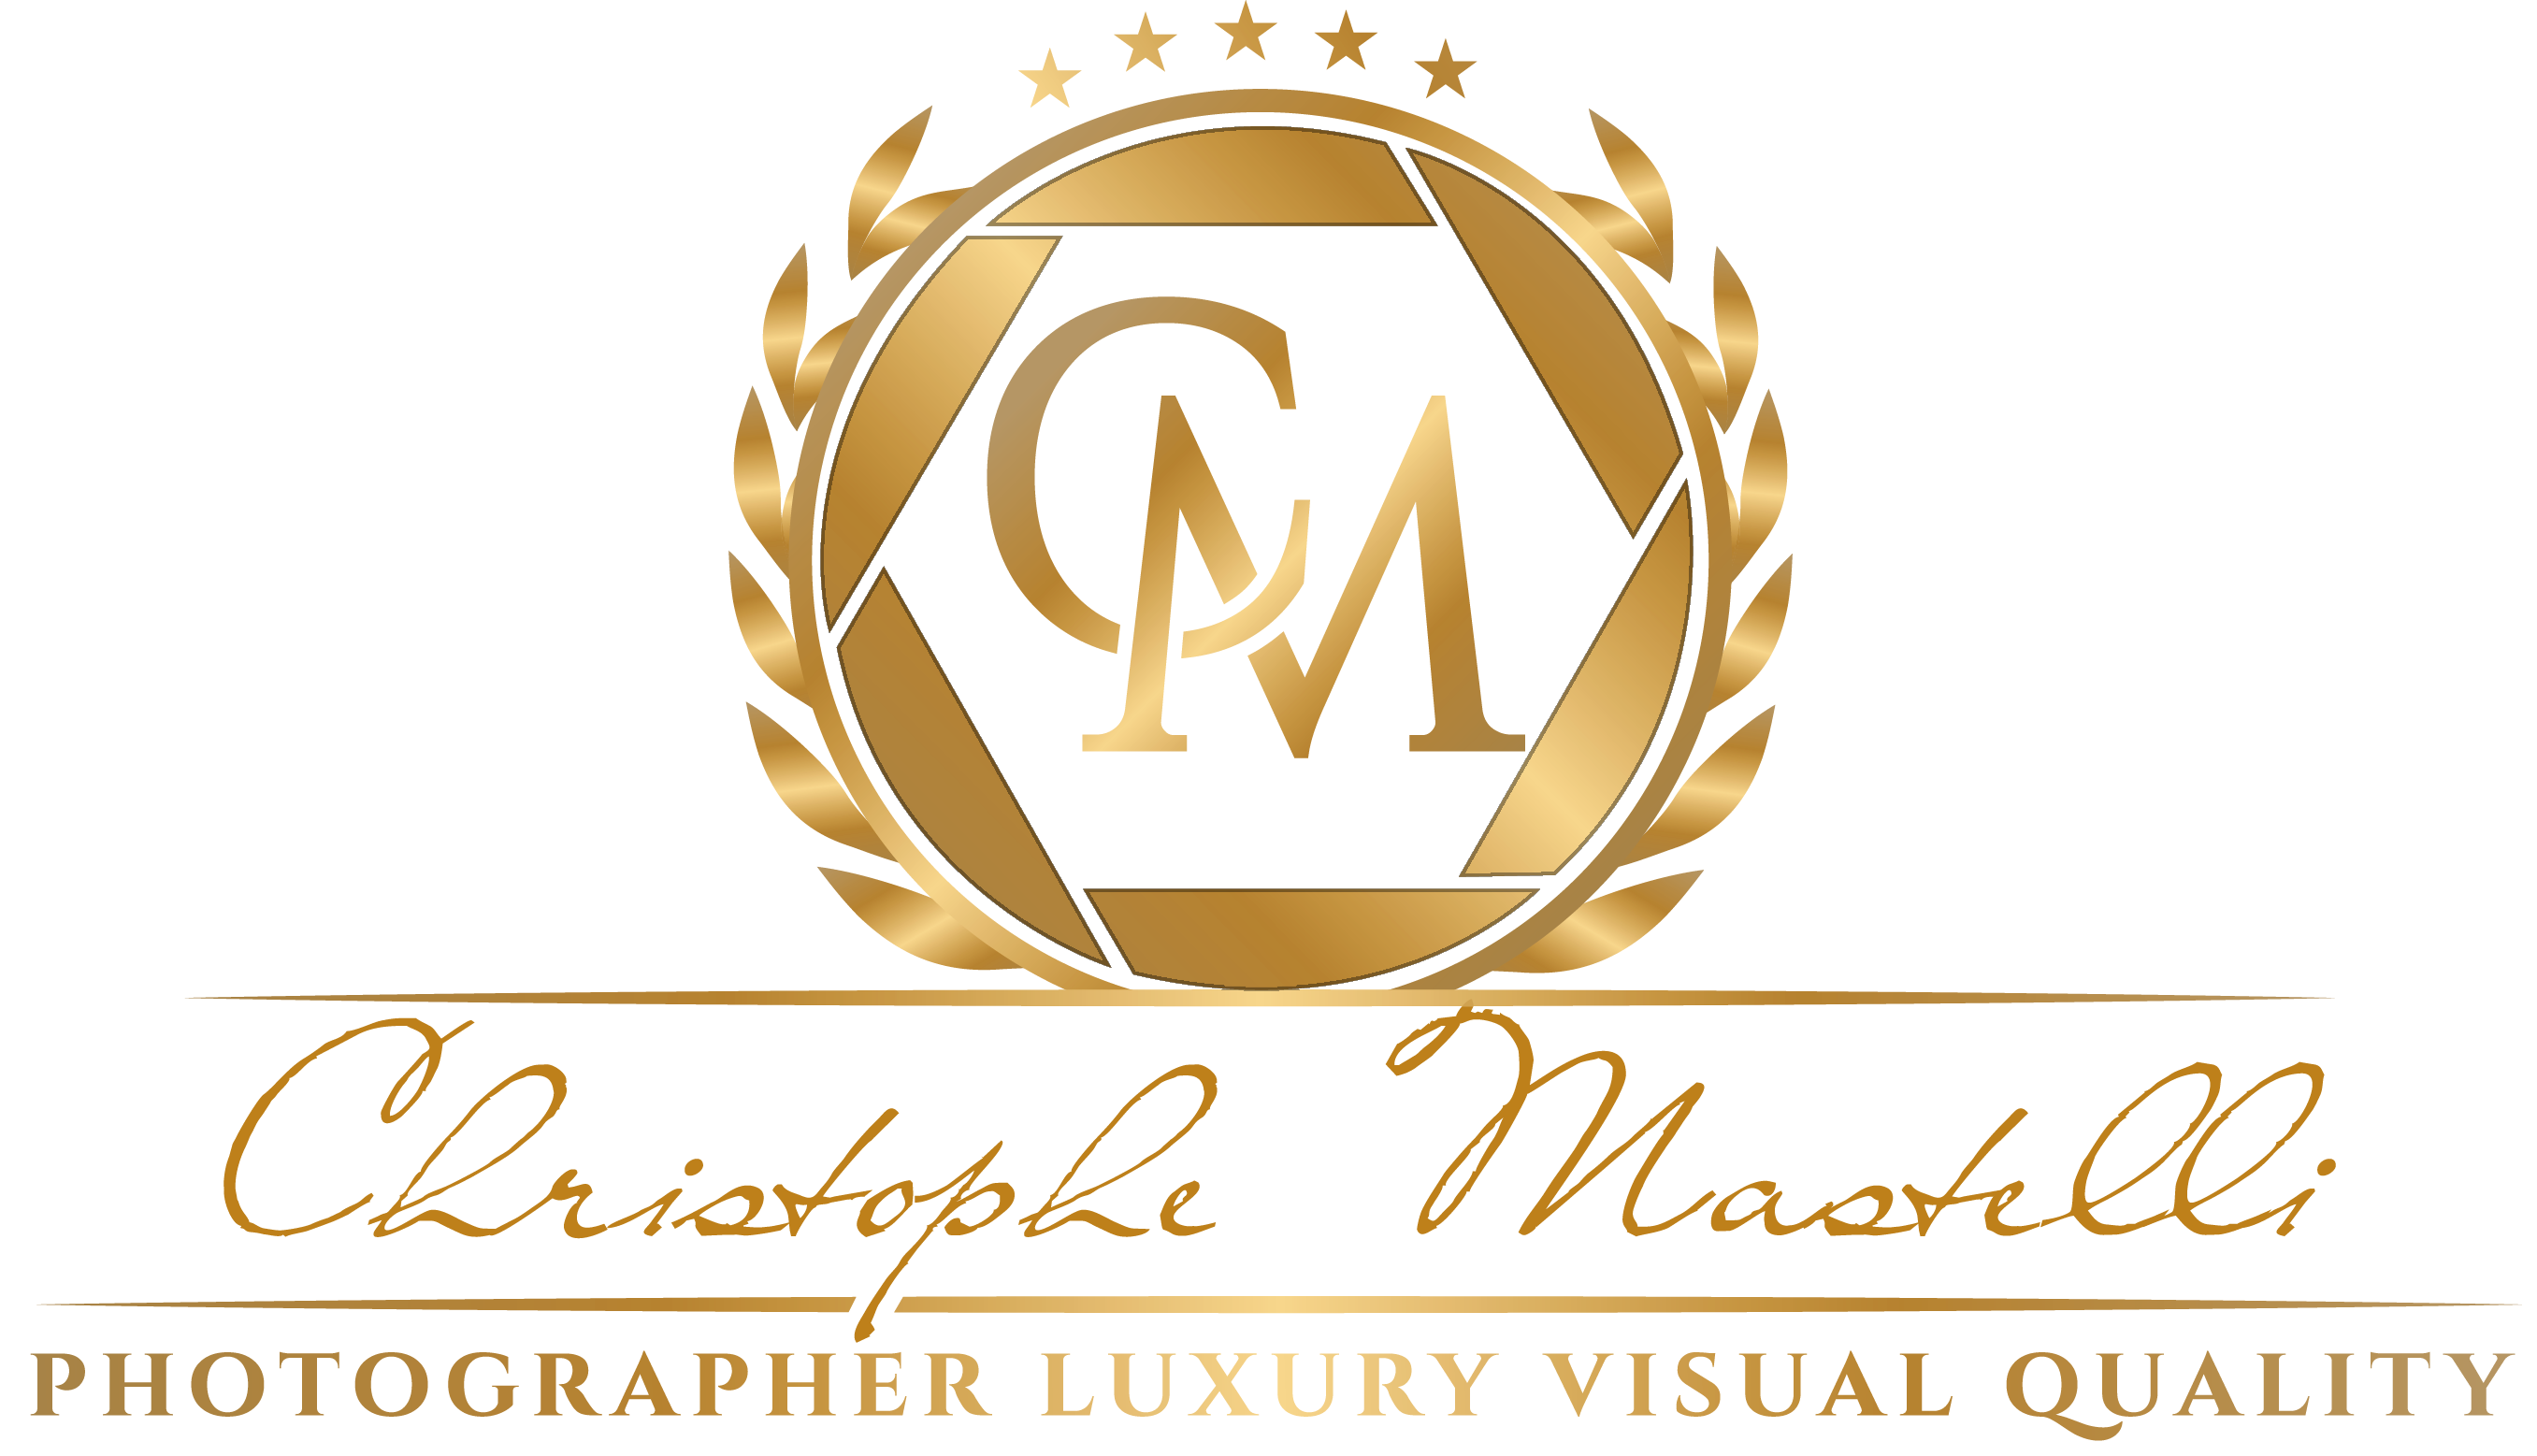 Christophe-mastelli-photographe-immobilier-architecture-marseille-paca